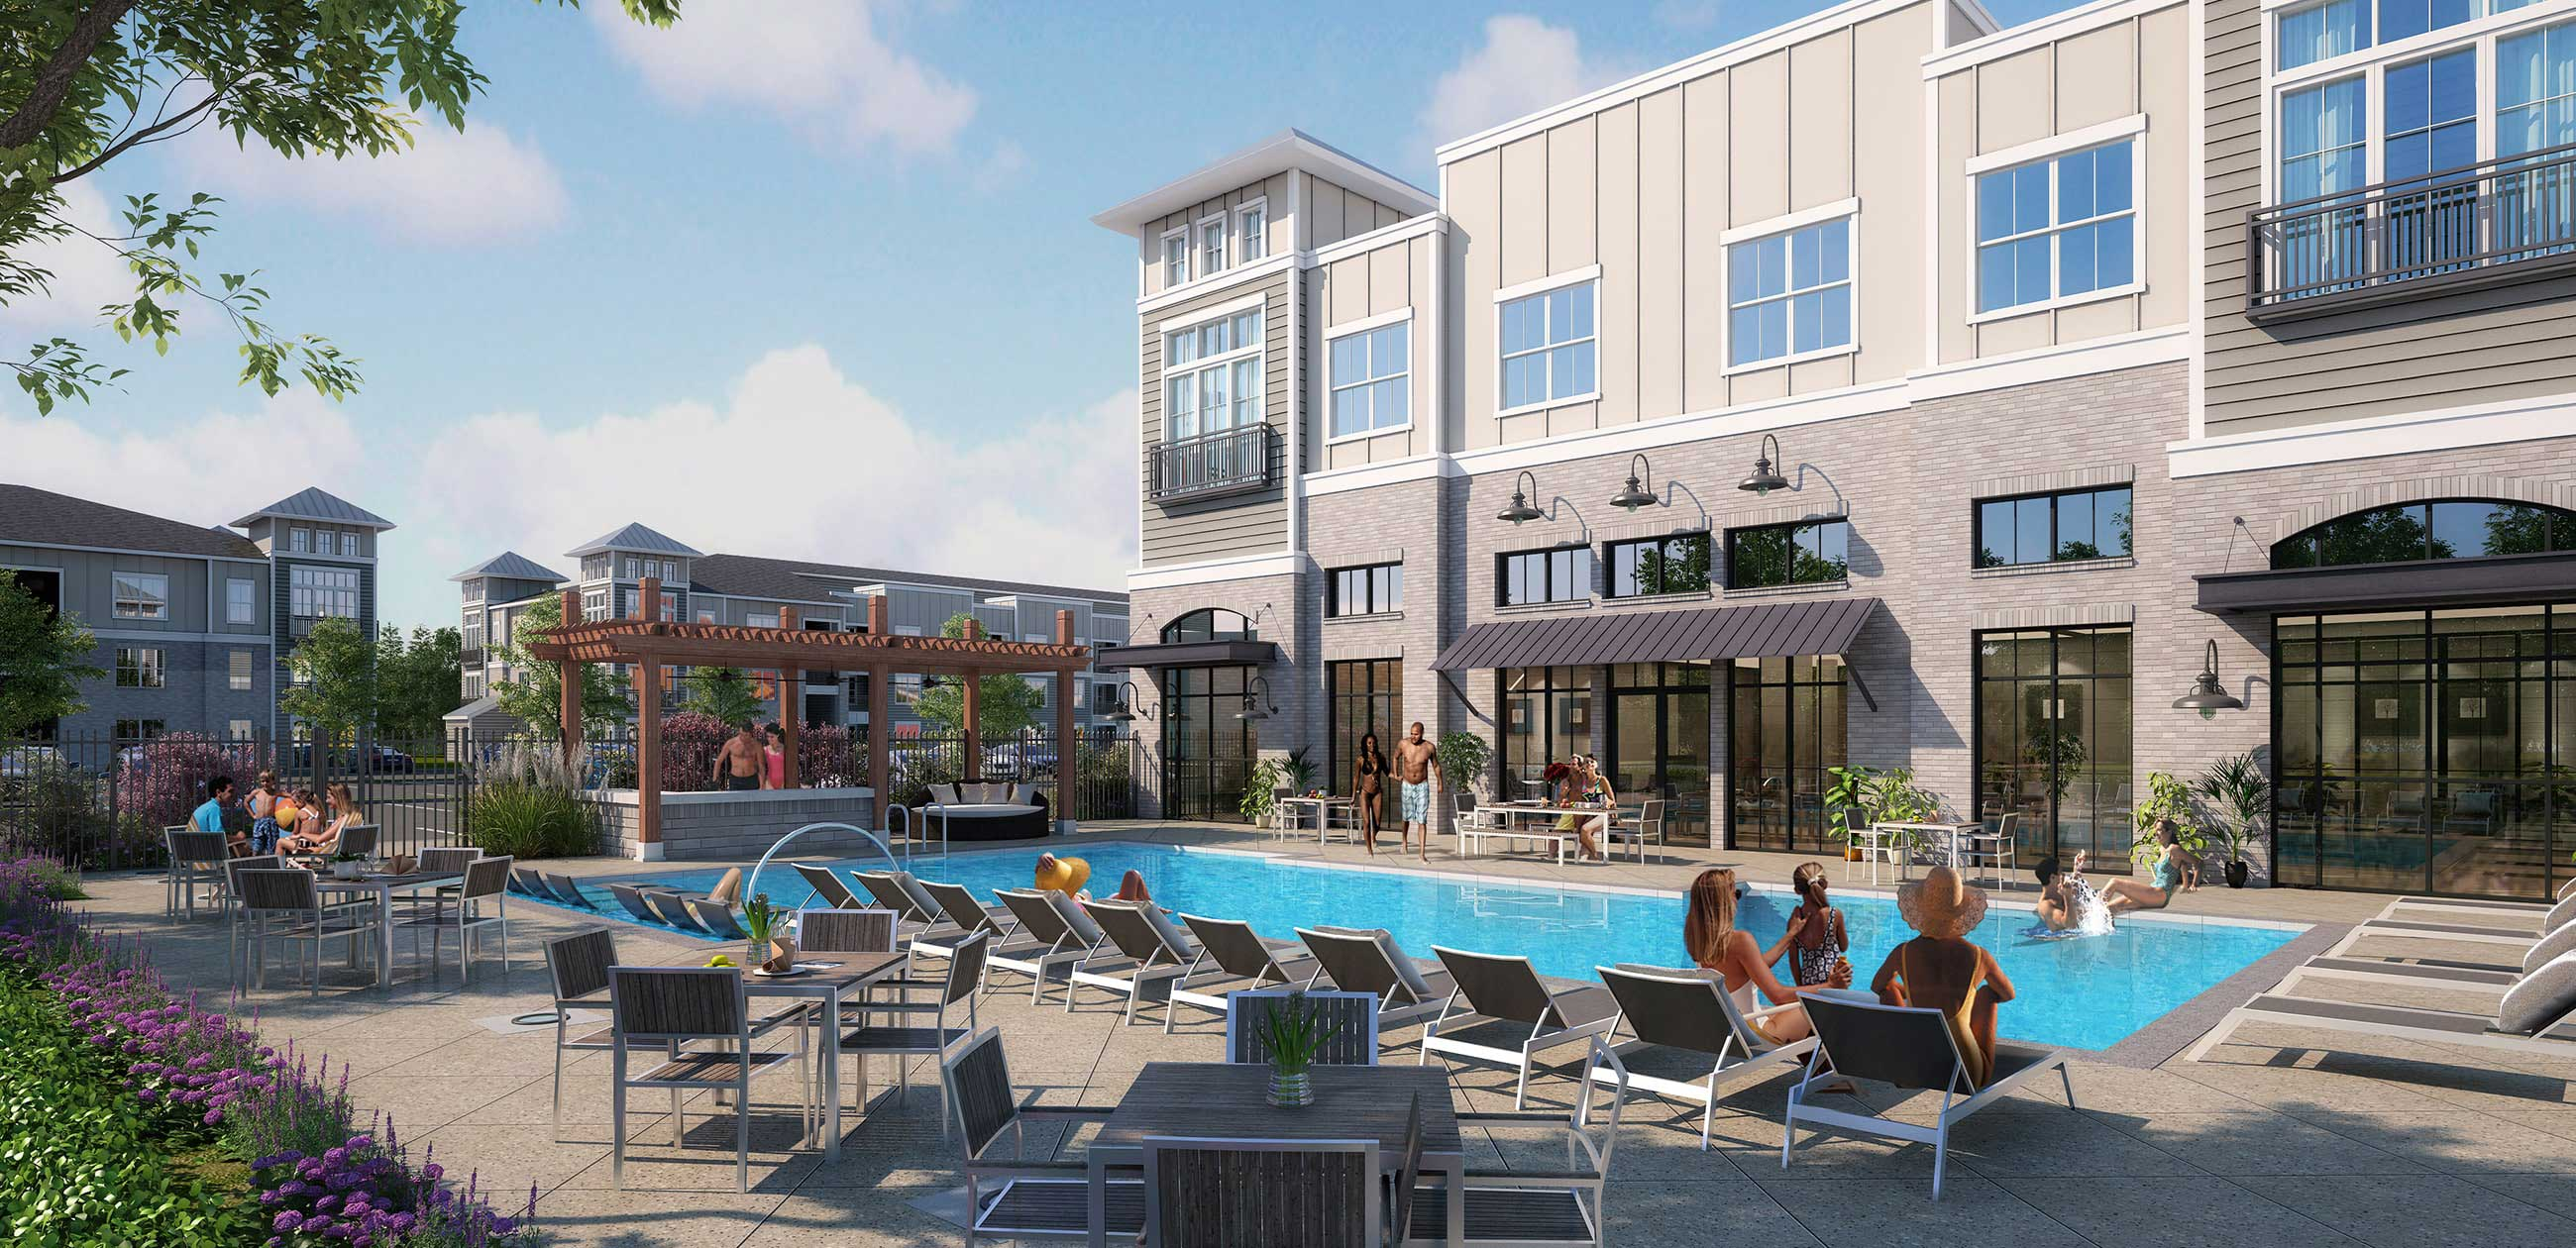 Resort-Style Swimming Pool at The Reserve at Shoe Creek Apartments in Central, Louisiana